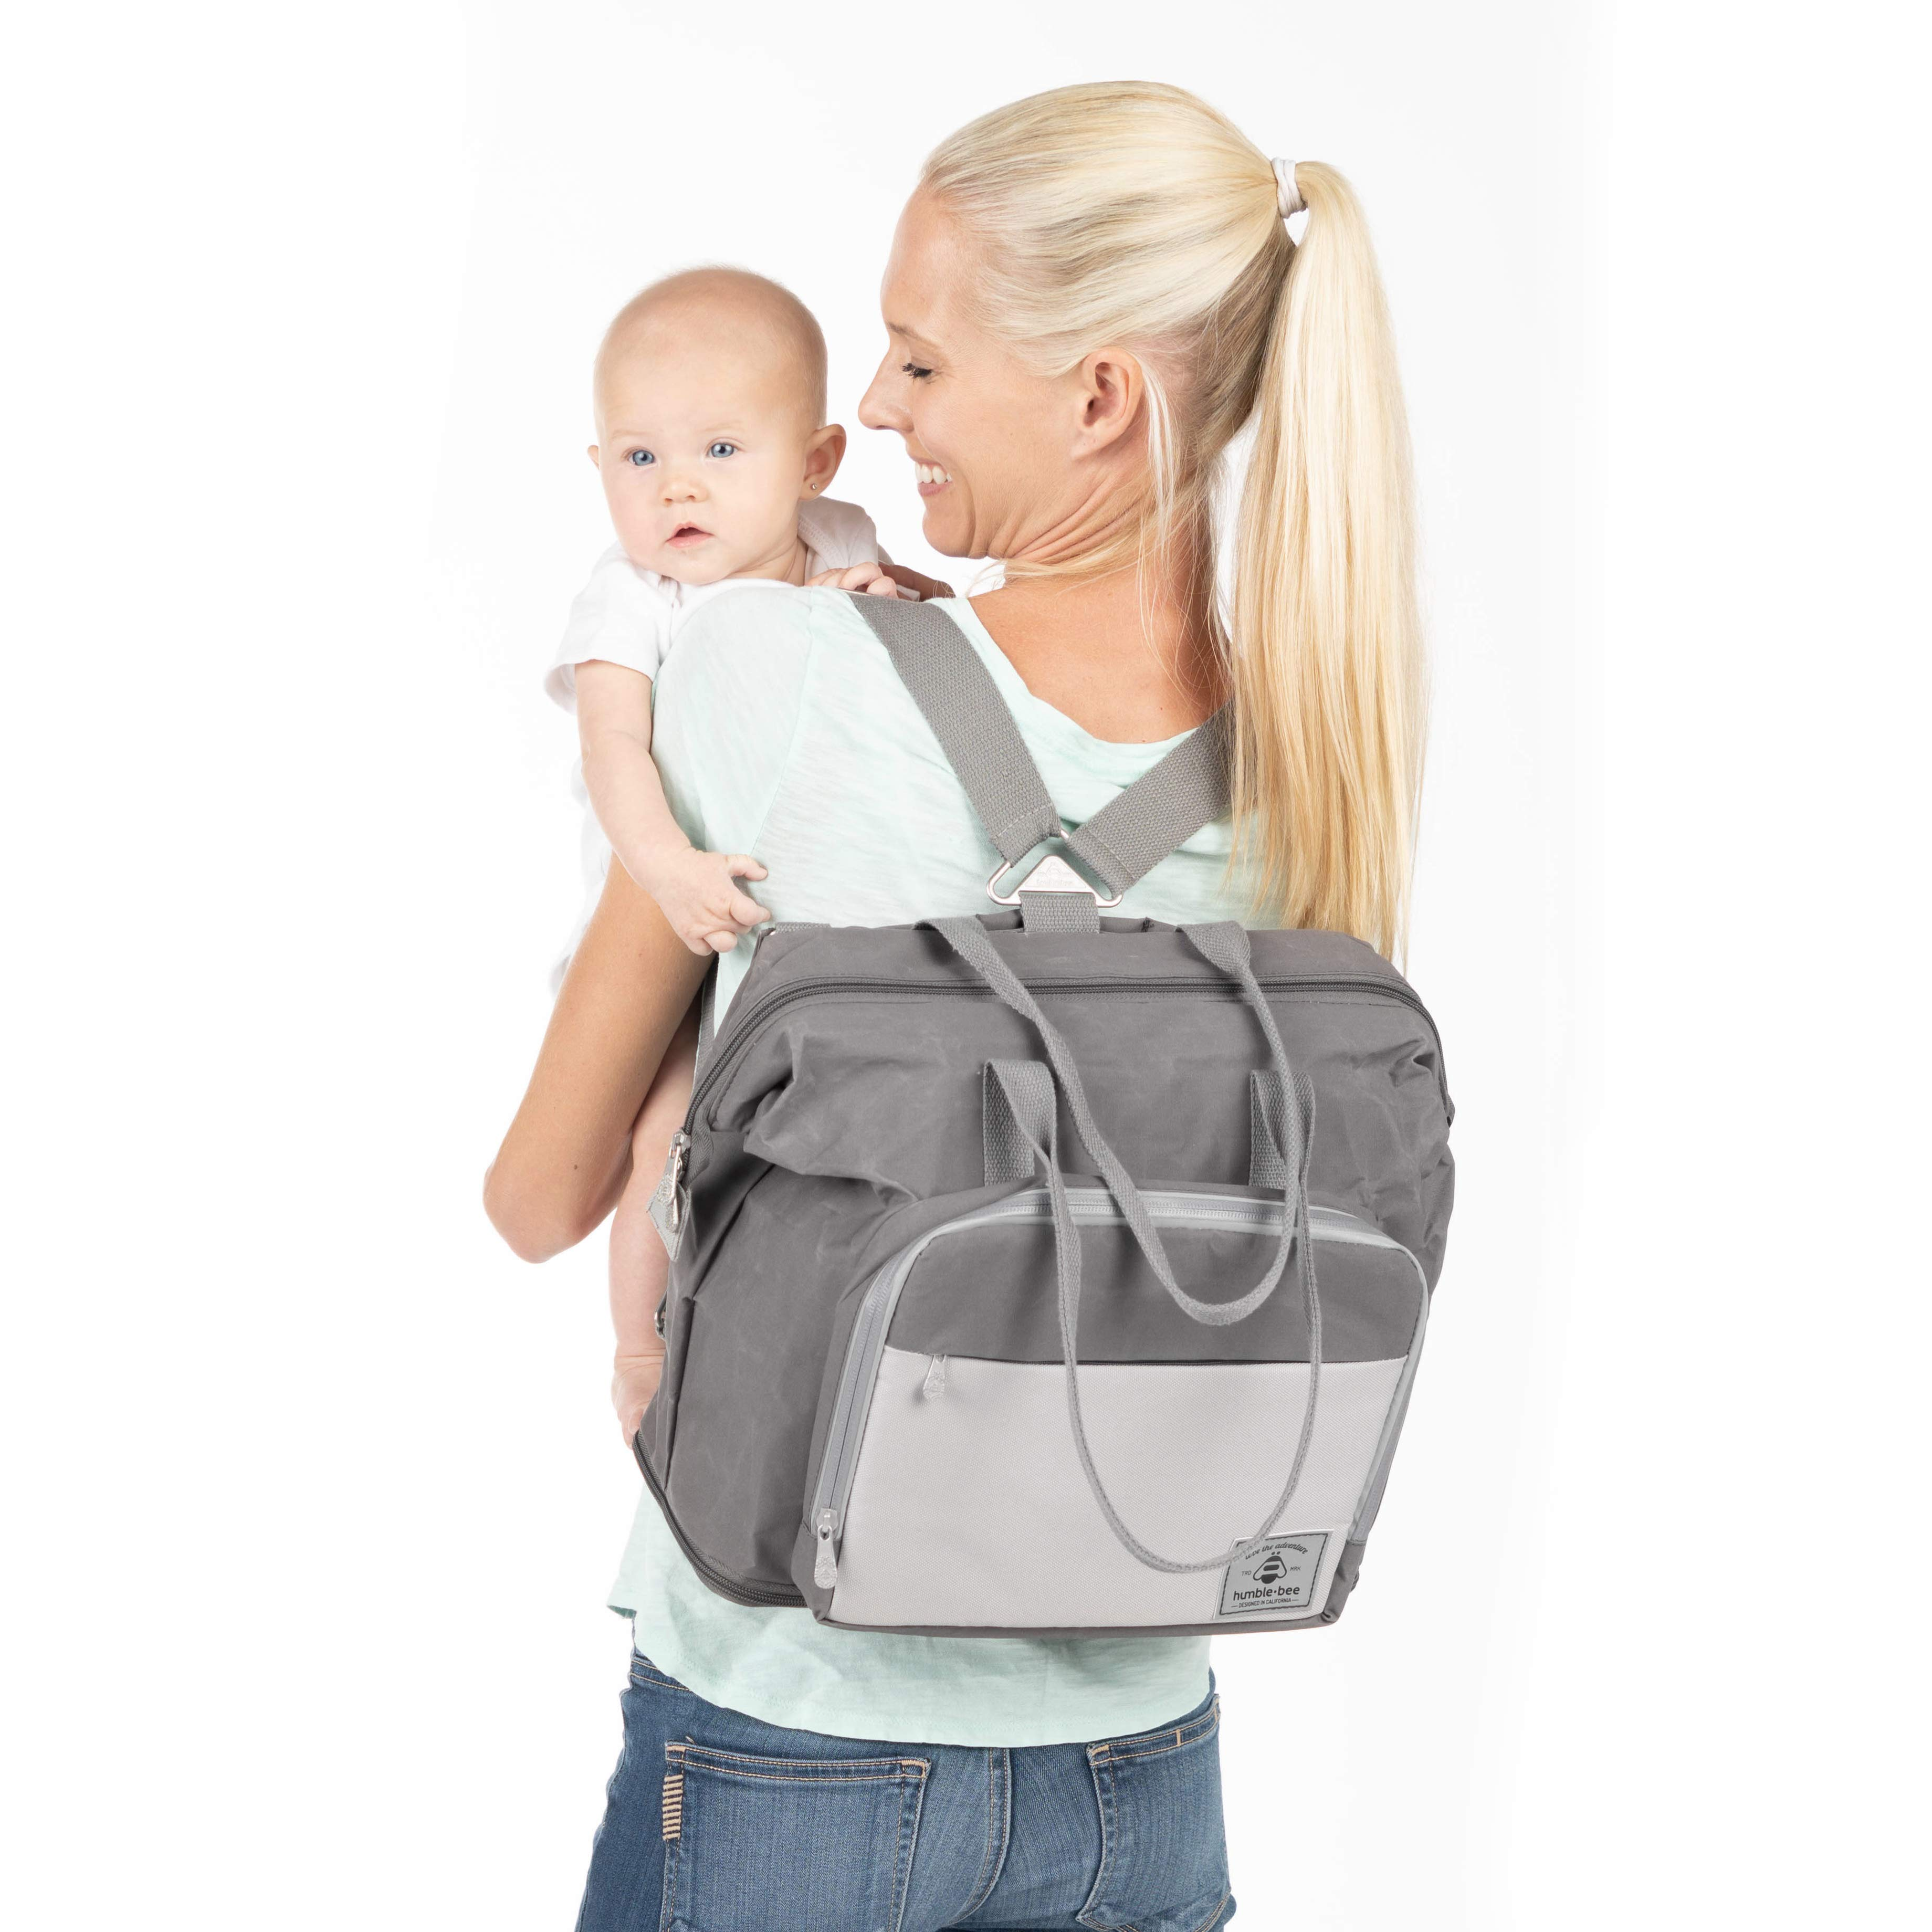 Humble-Bee Boundless Charm Expandable Diaper Bag